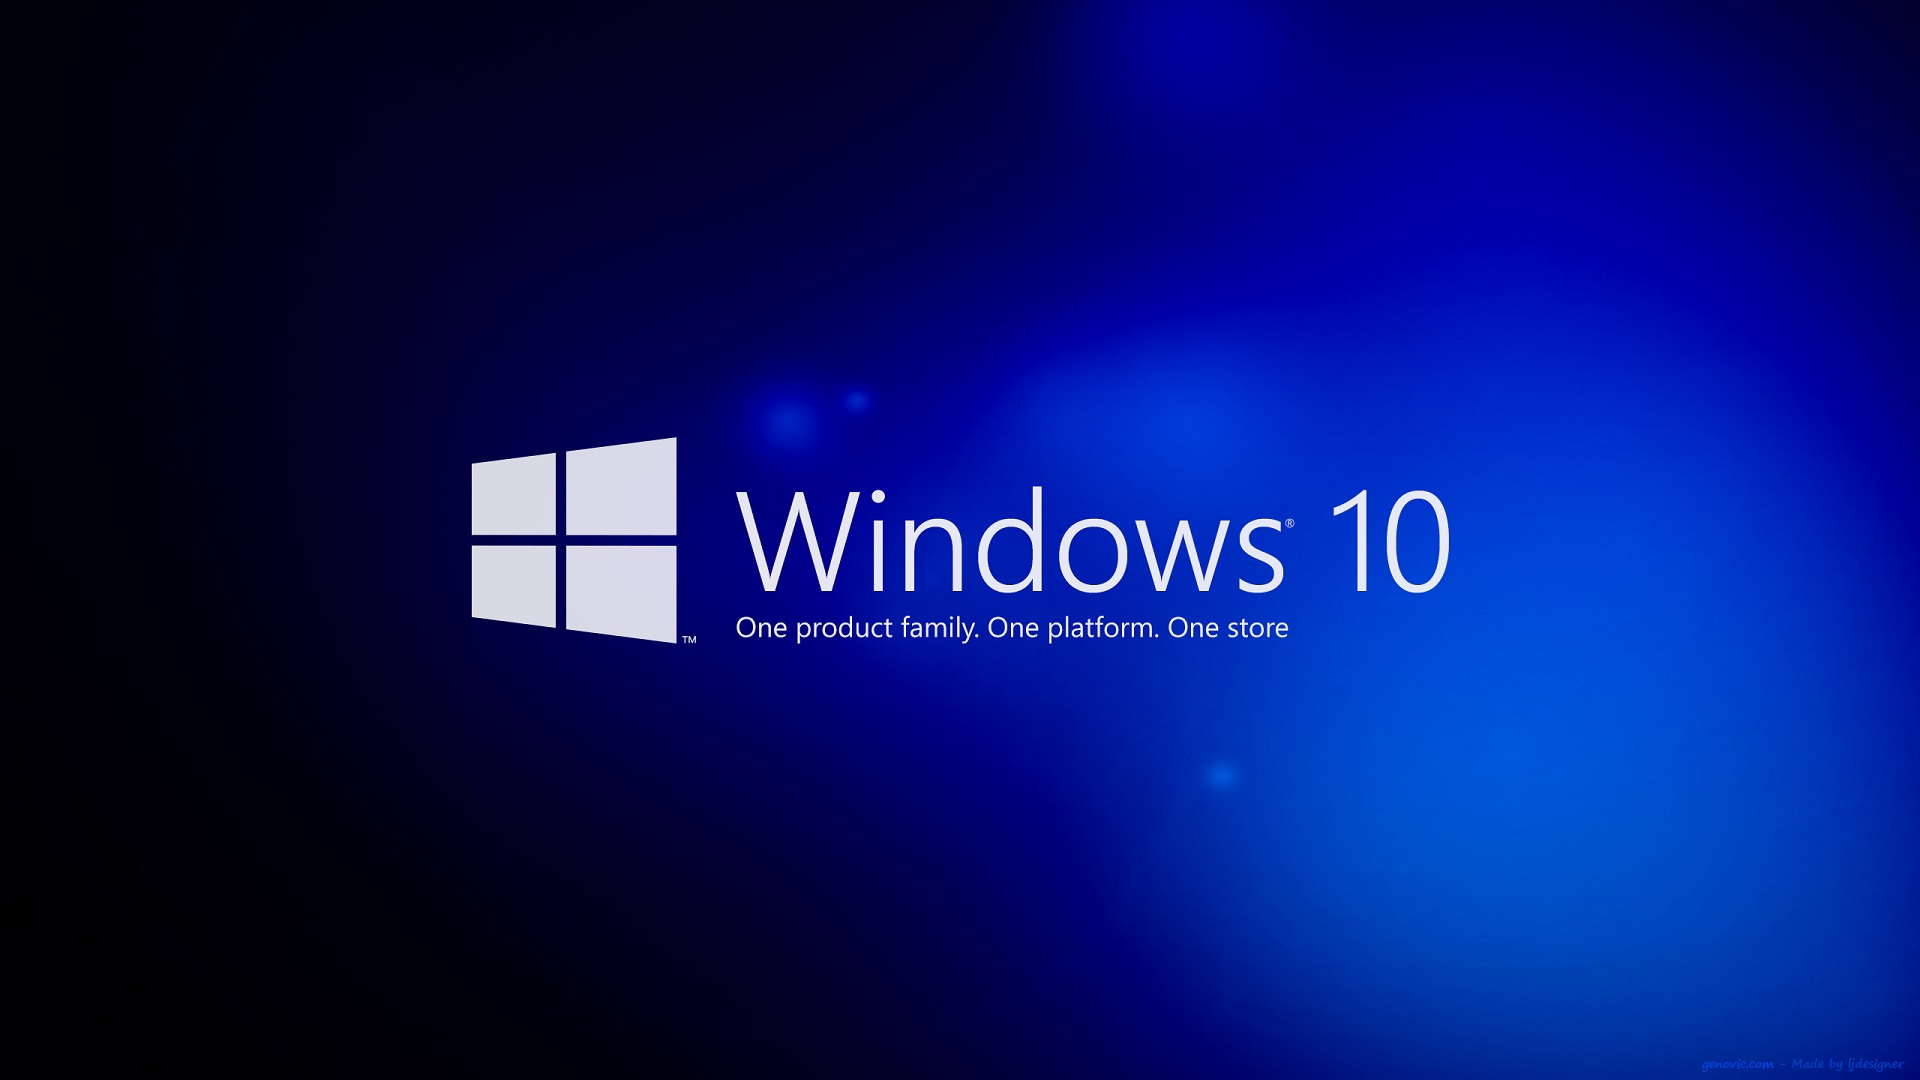 windows 10 pro 32 64 bit iso kickass free download